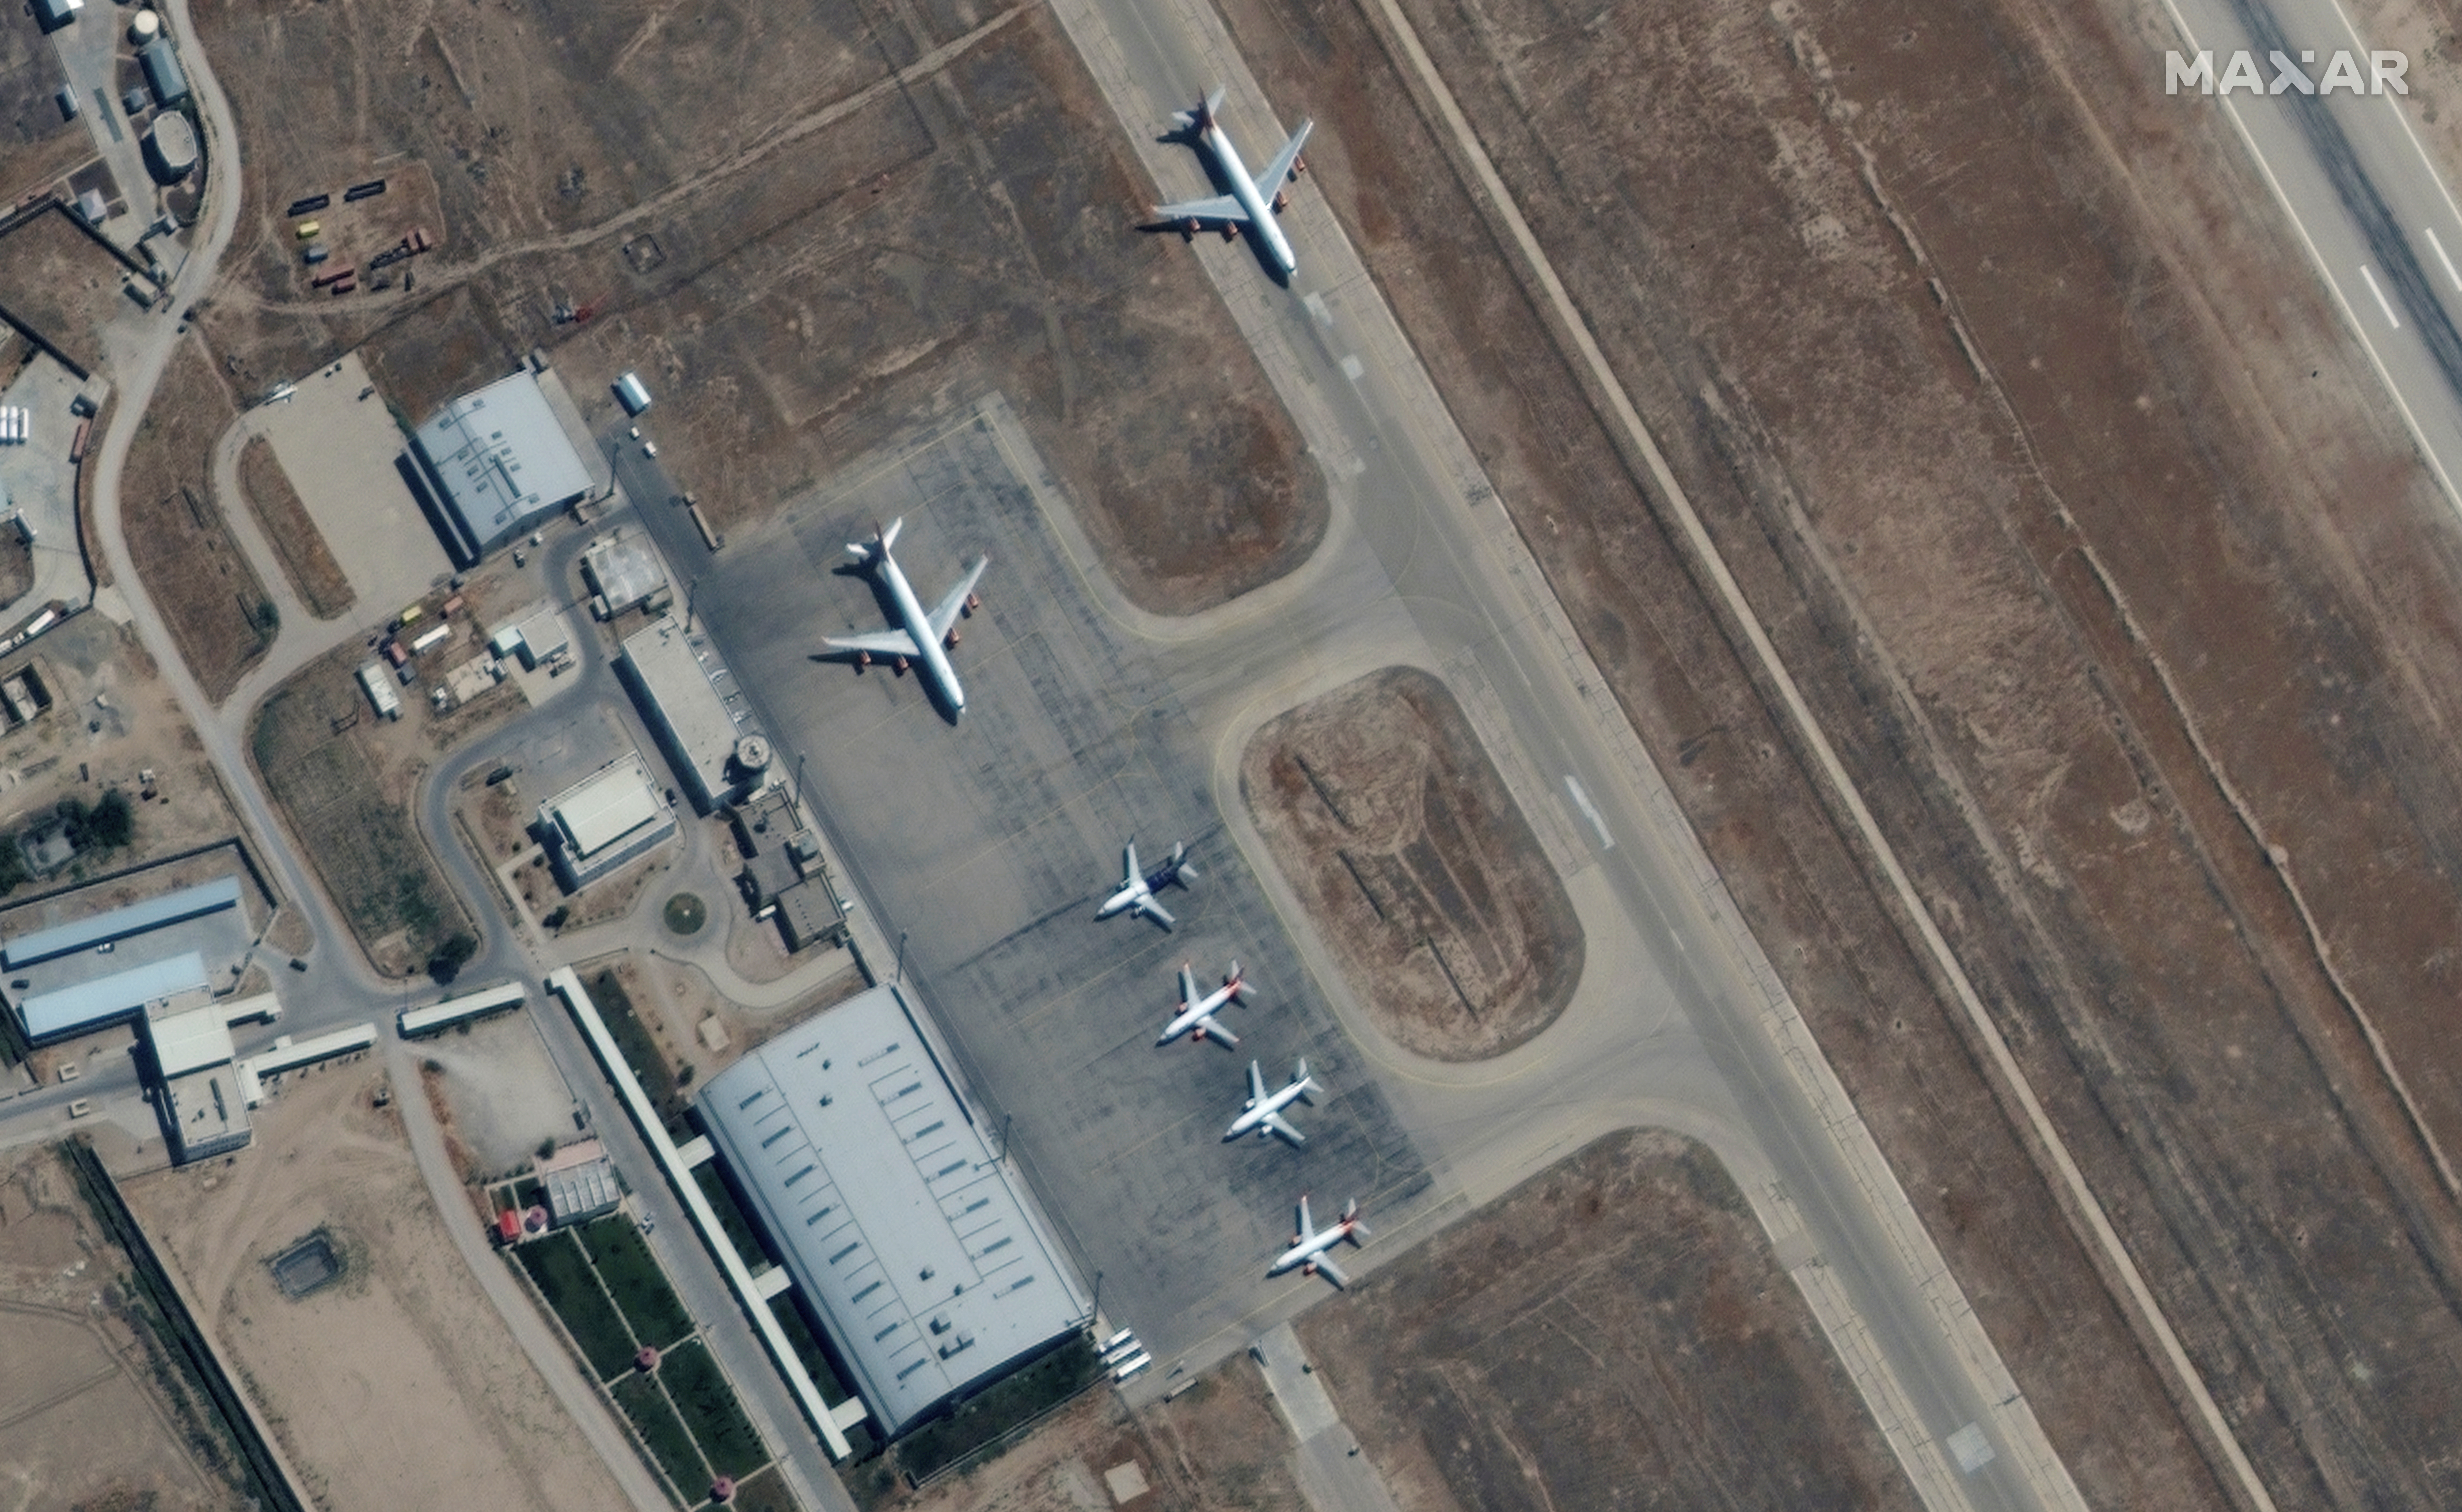 Six commercial airplanes are seen near the main terminal of the Mazar-i-Sharif airport, in northern Afghanistan, September 3 2021. Maxar Technologies/Handout via REUTERS